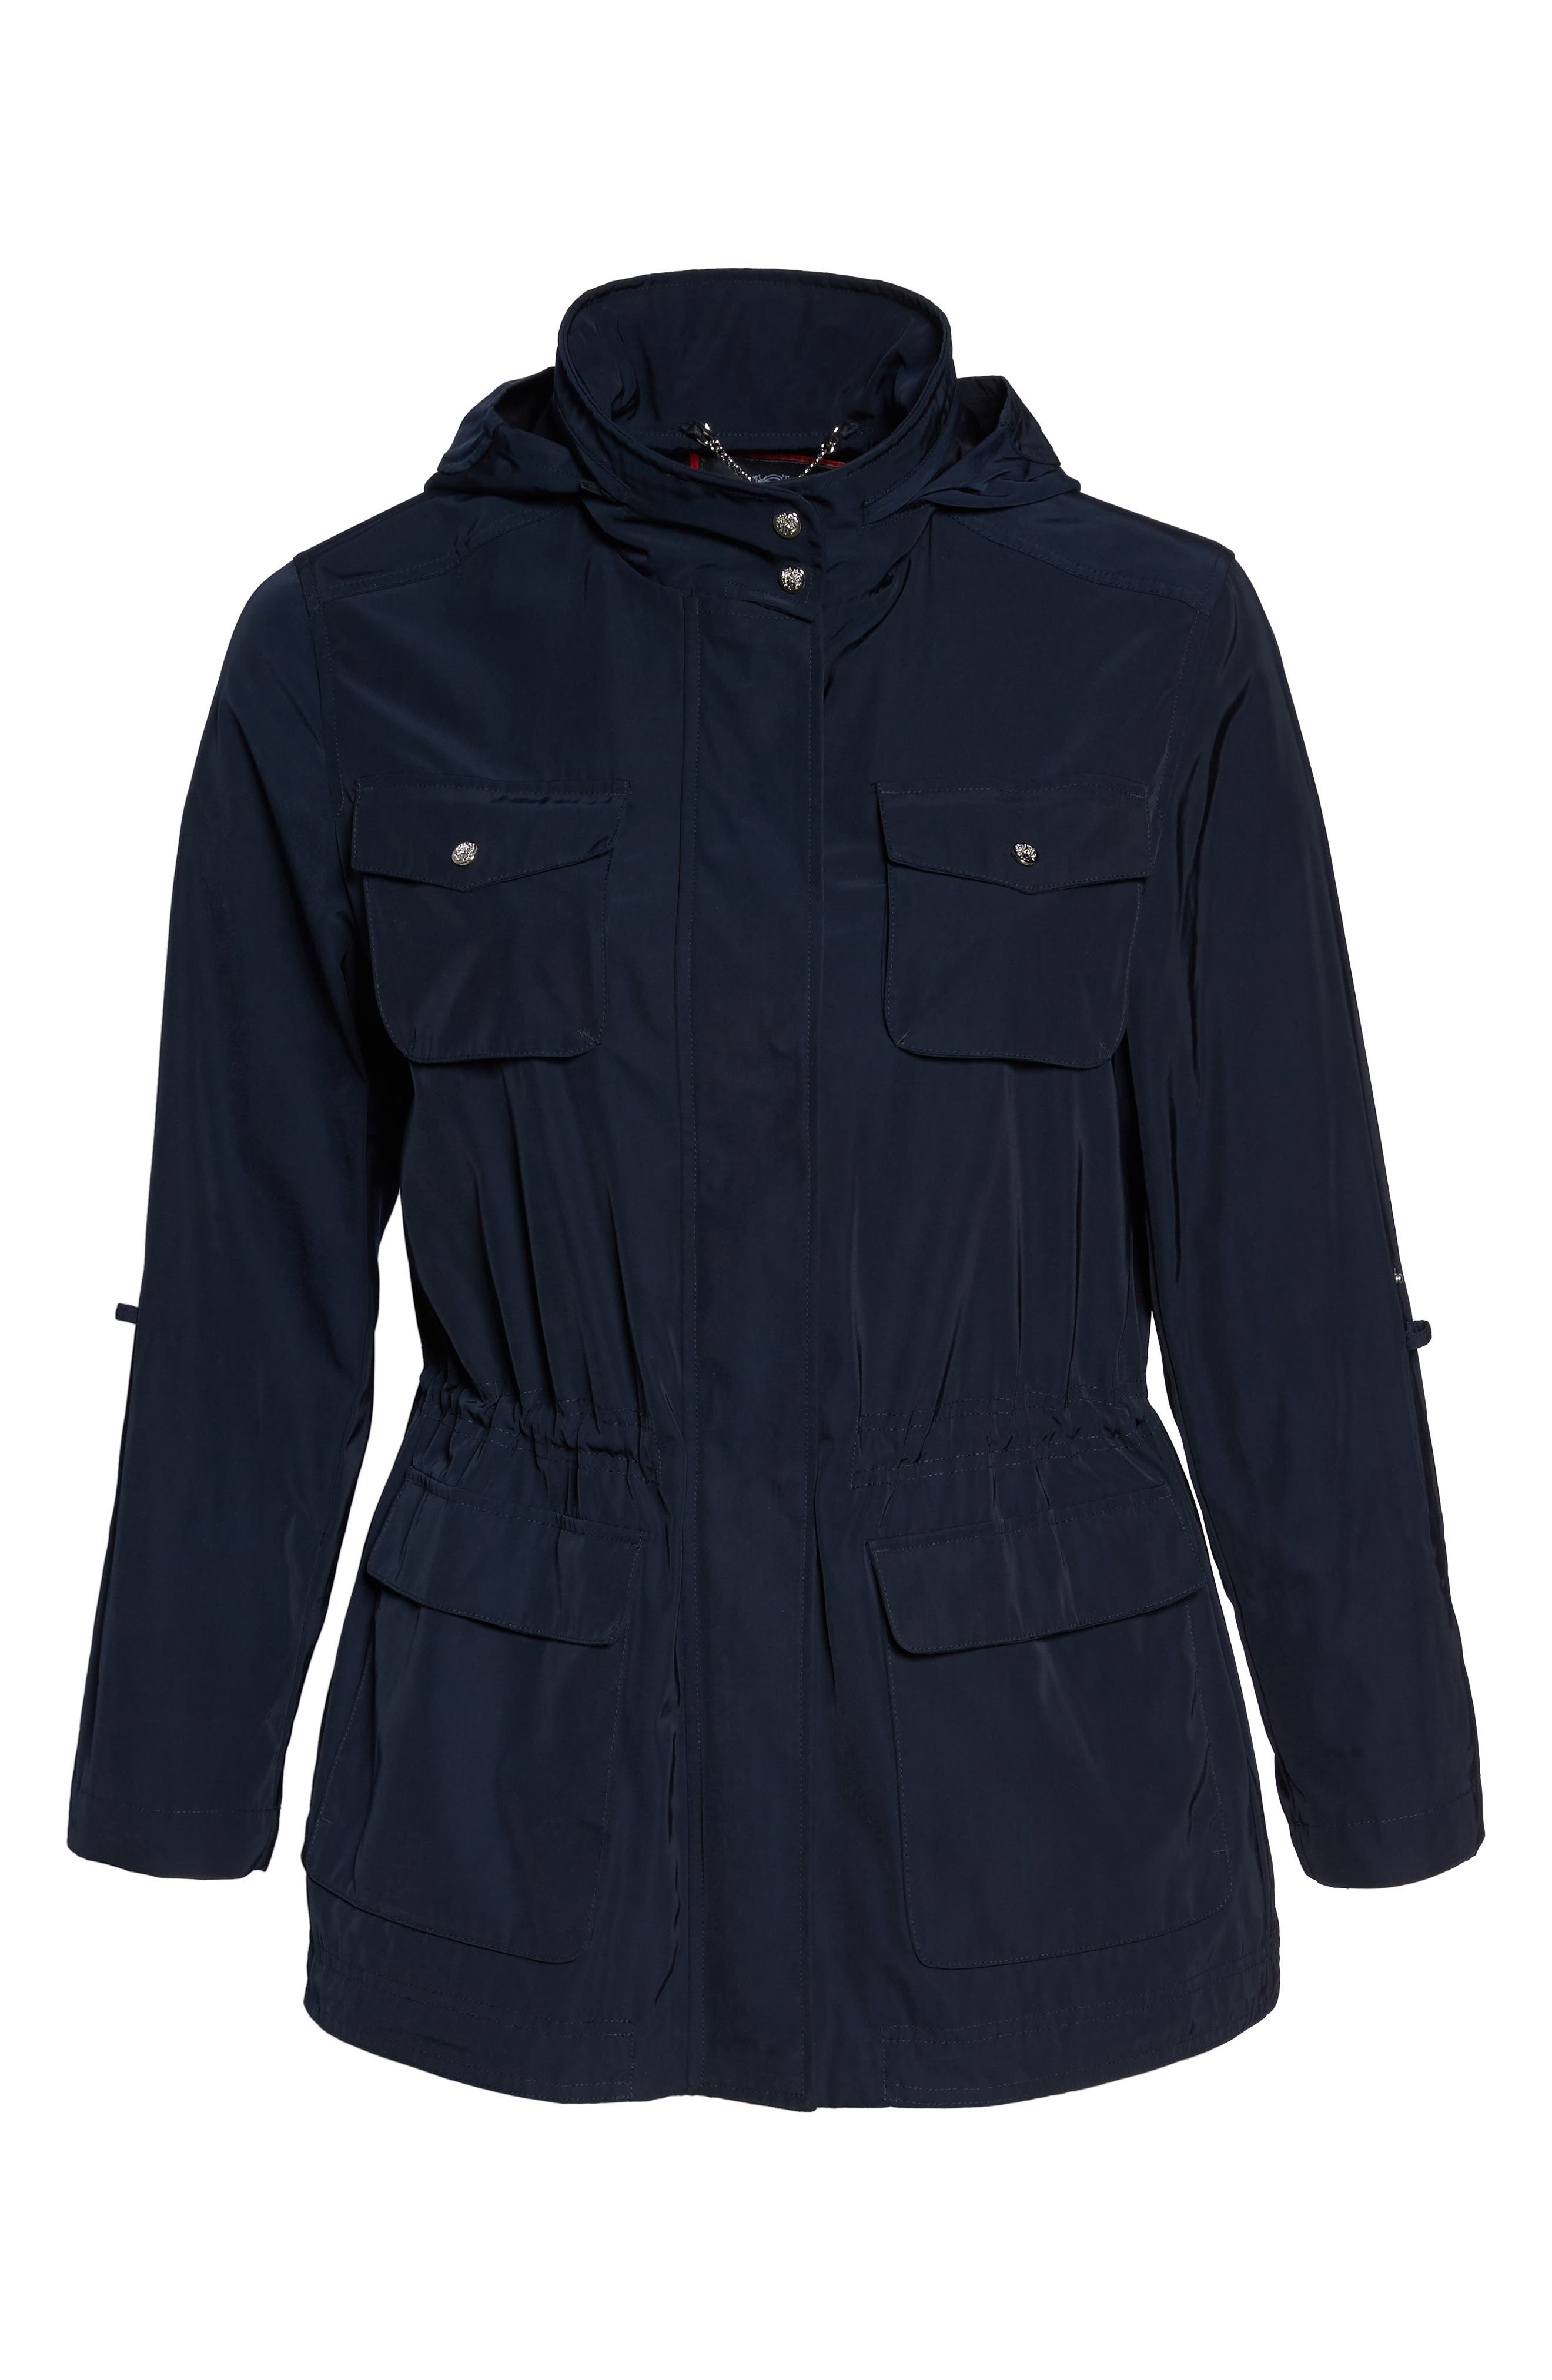 Americana Parka,                             Alternate thumbnail 7, color,                             Navy